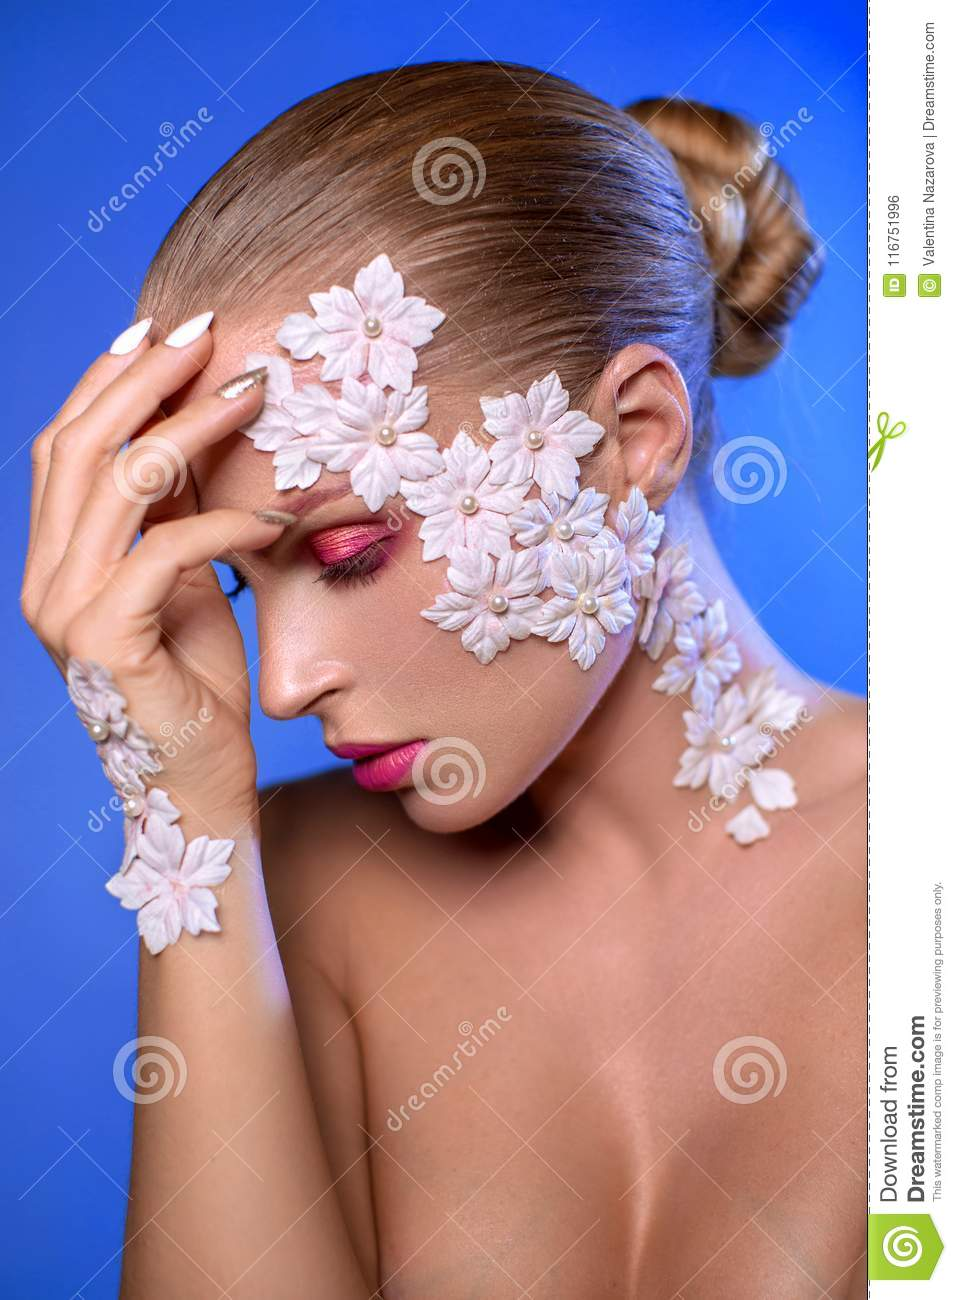 Portrait of a girl with flowers on her face